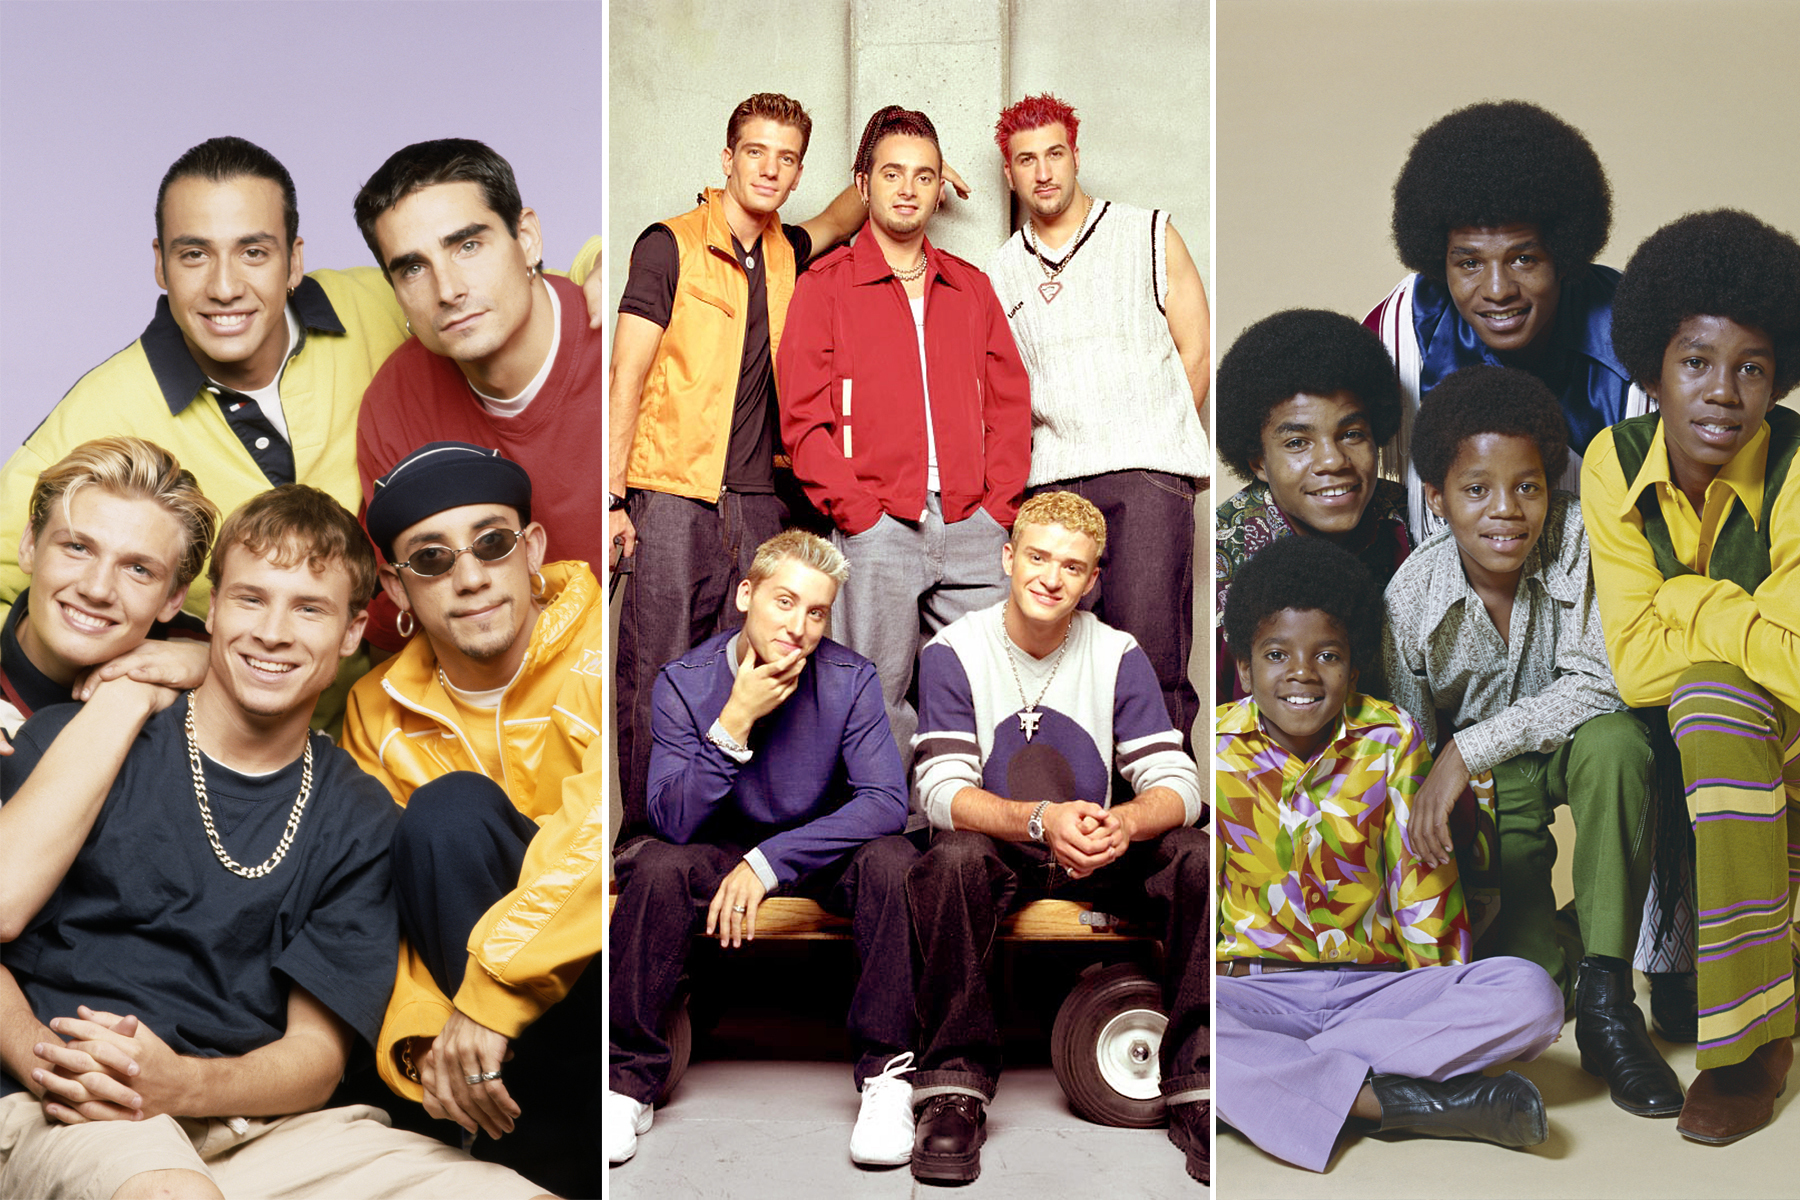 Boy Bands 75 Greatest Songs Of All Time Rolling Stone Nobody, no, nobody, said nobody, no, no, no, nobody to love me like you do, to love me like you do, to love me like you do. boy bands 75 greatest songs of all